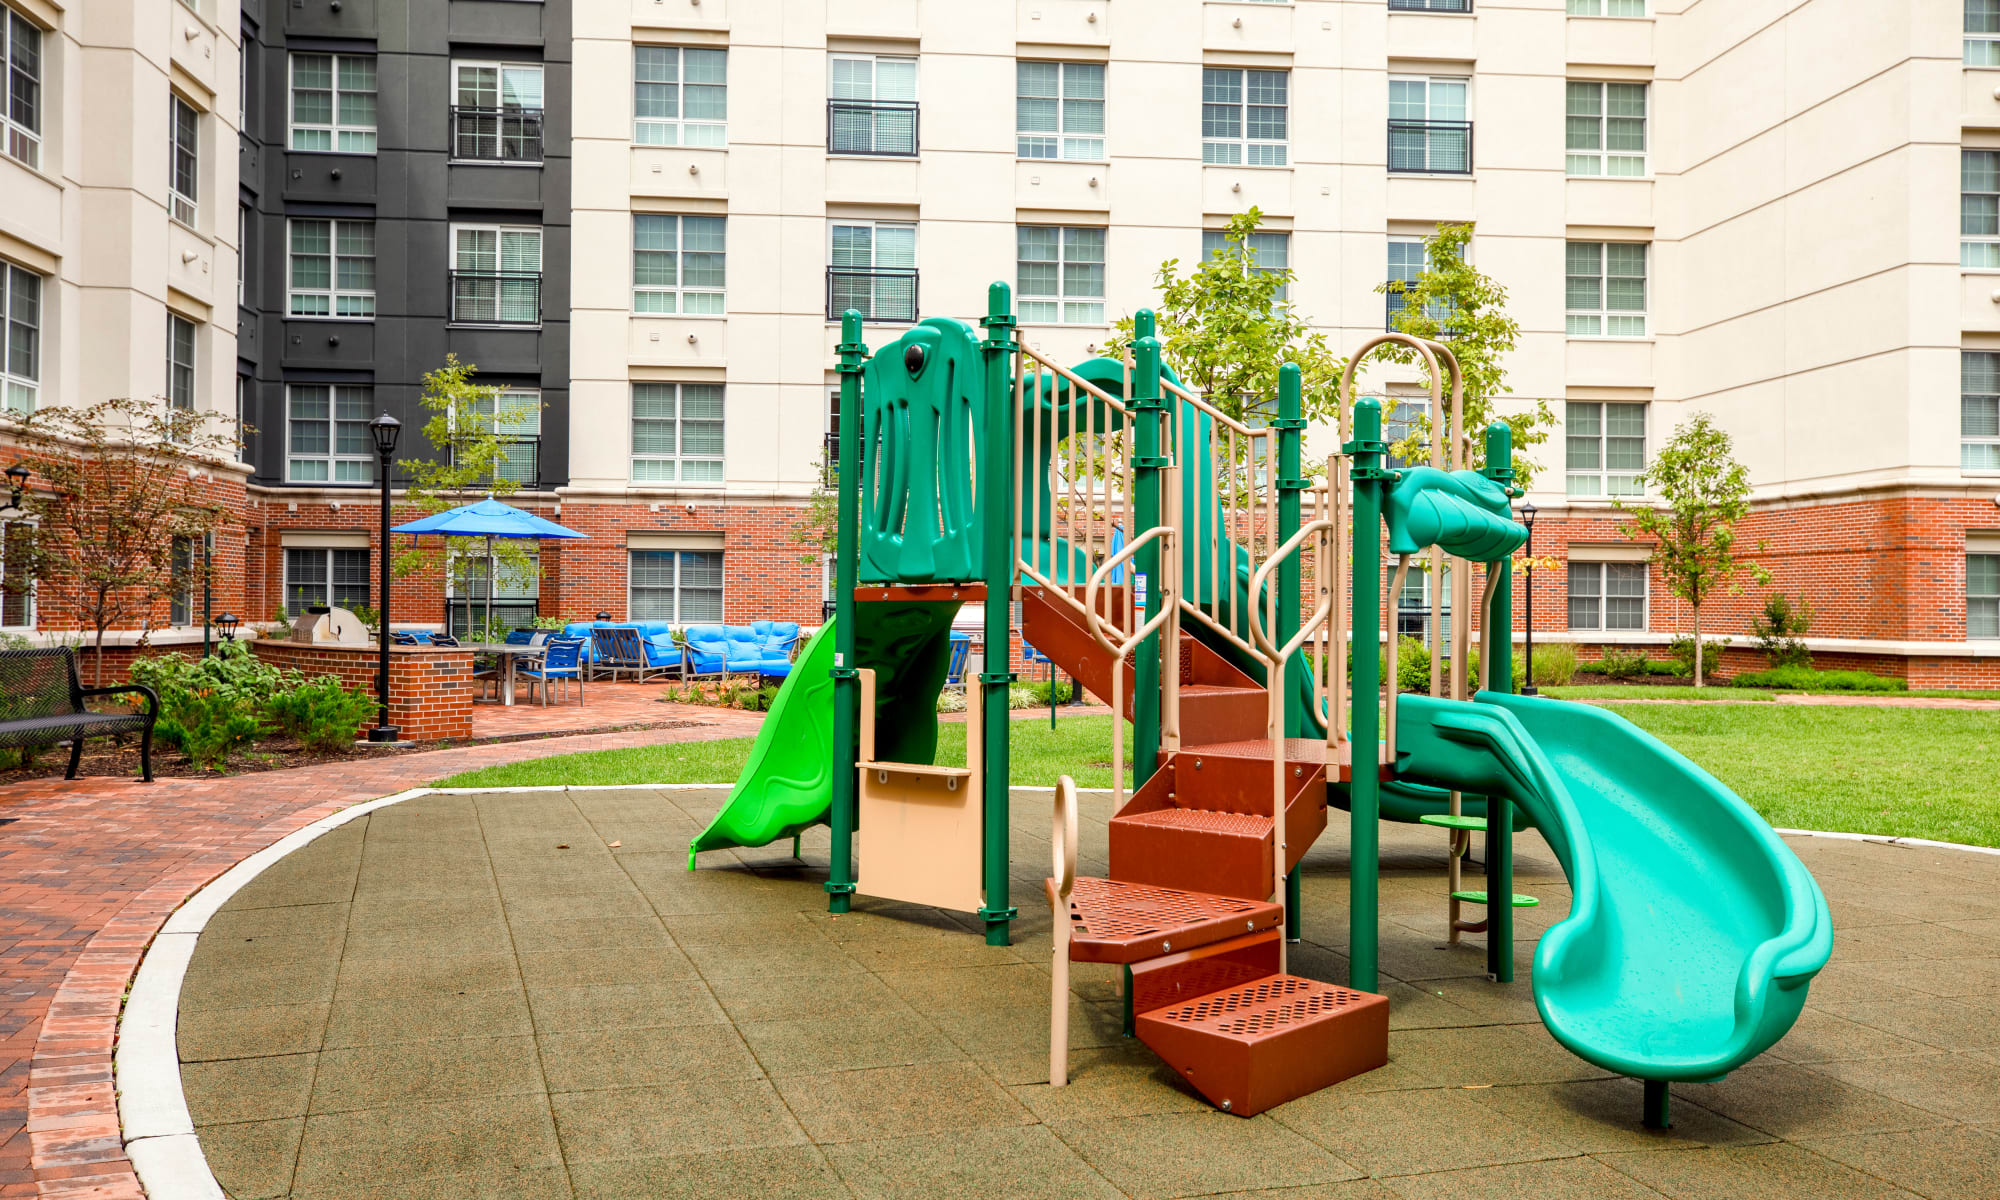 Playground at The Harper at Harmon Meadow in Secaucus, New Jersey